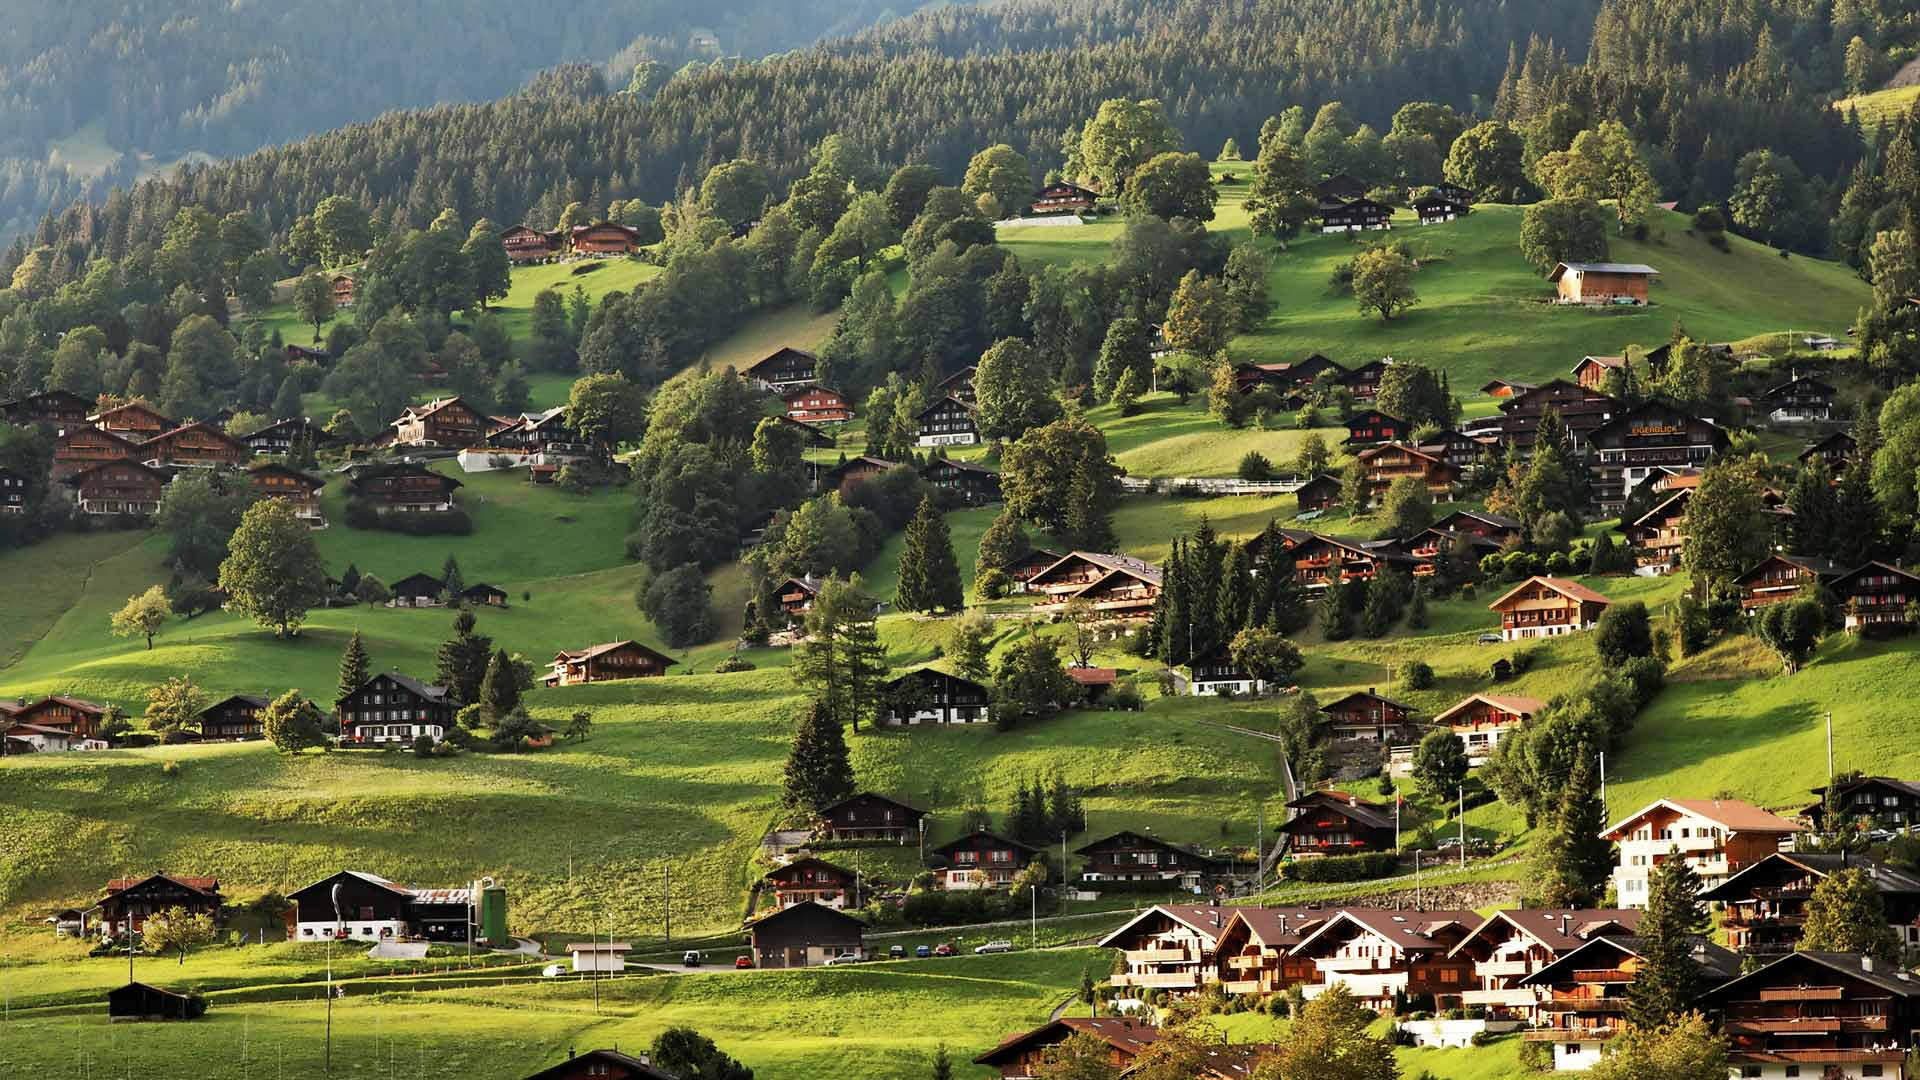 Rent luxury chalets in klosters expert advice for your for Swiss chalets for sale